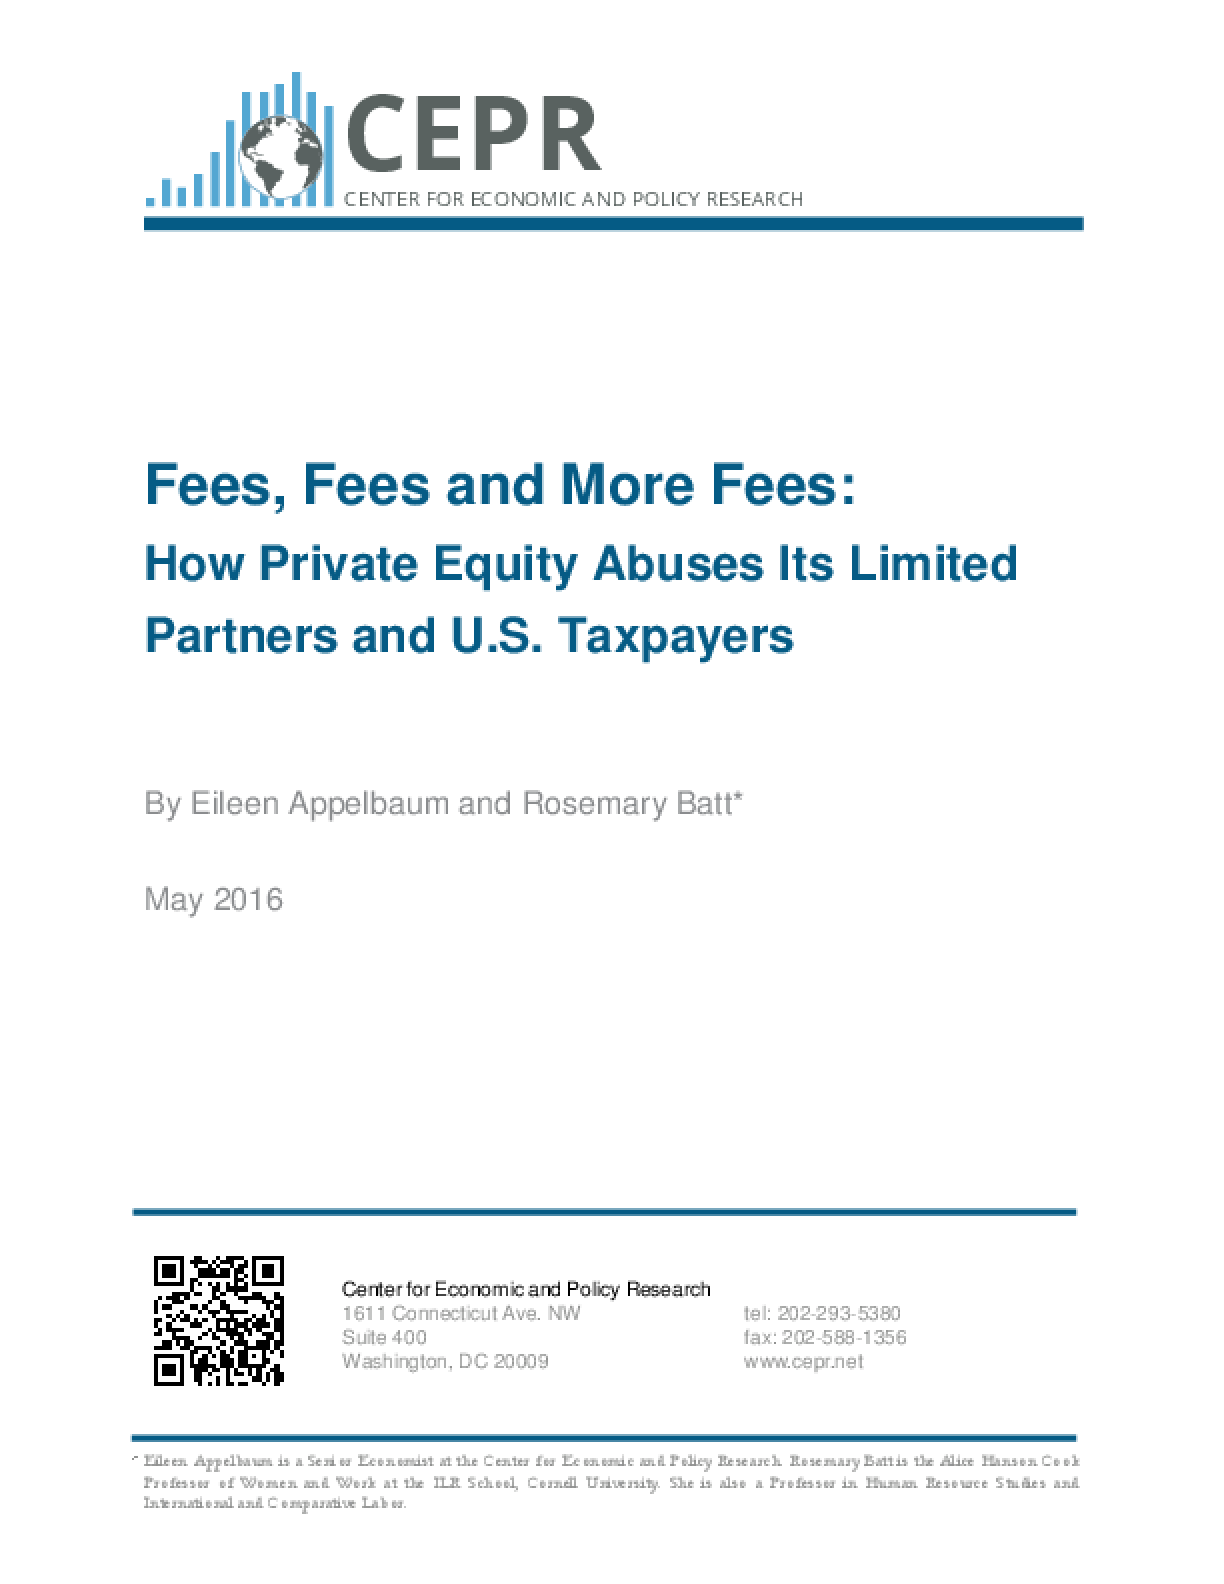 Fees, Fees and More Fees: How Private Equity Abuses its Limited Partners and U.S. Taxpayers